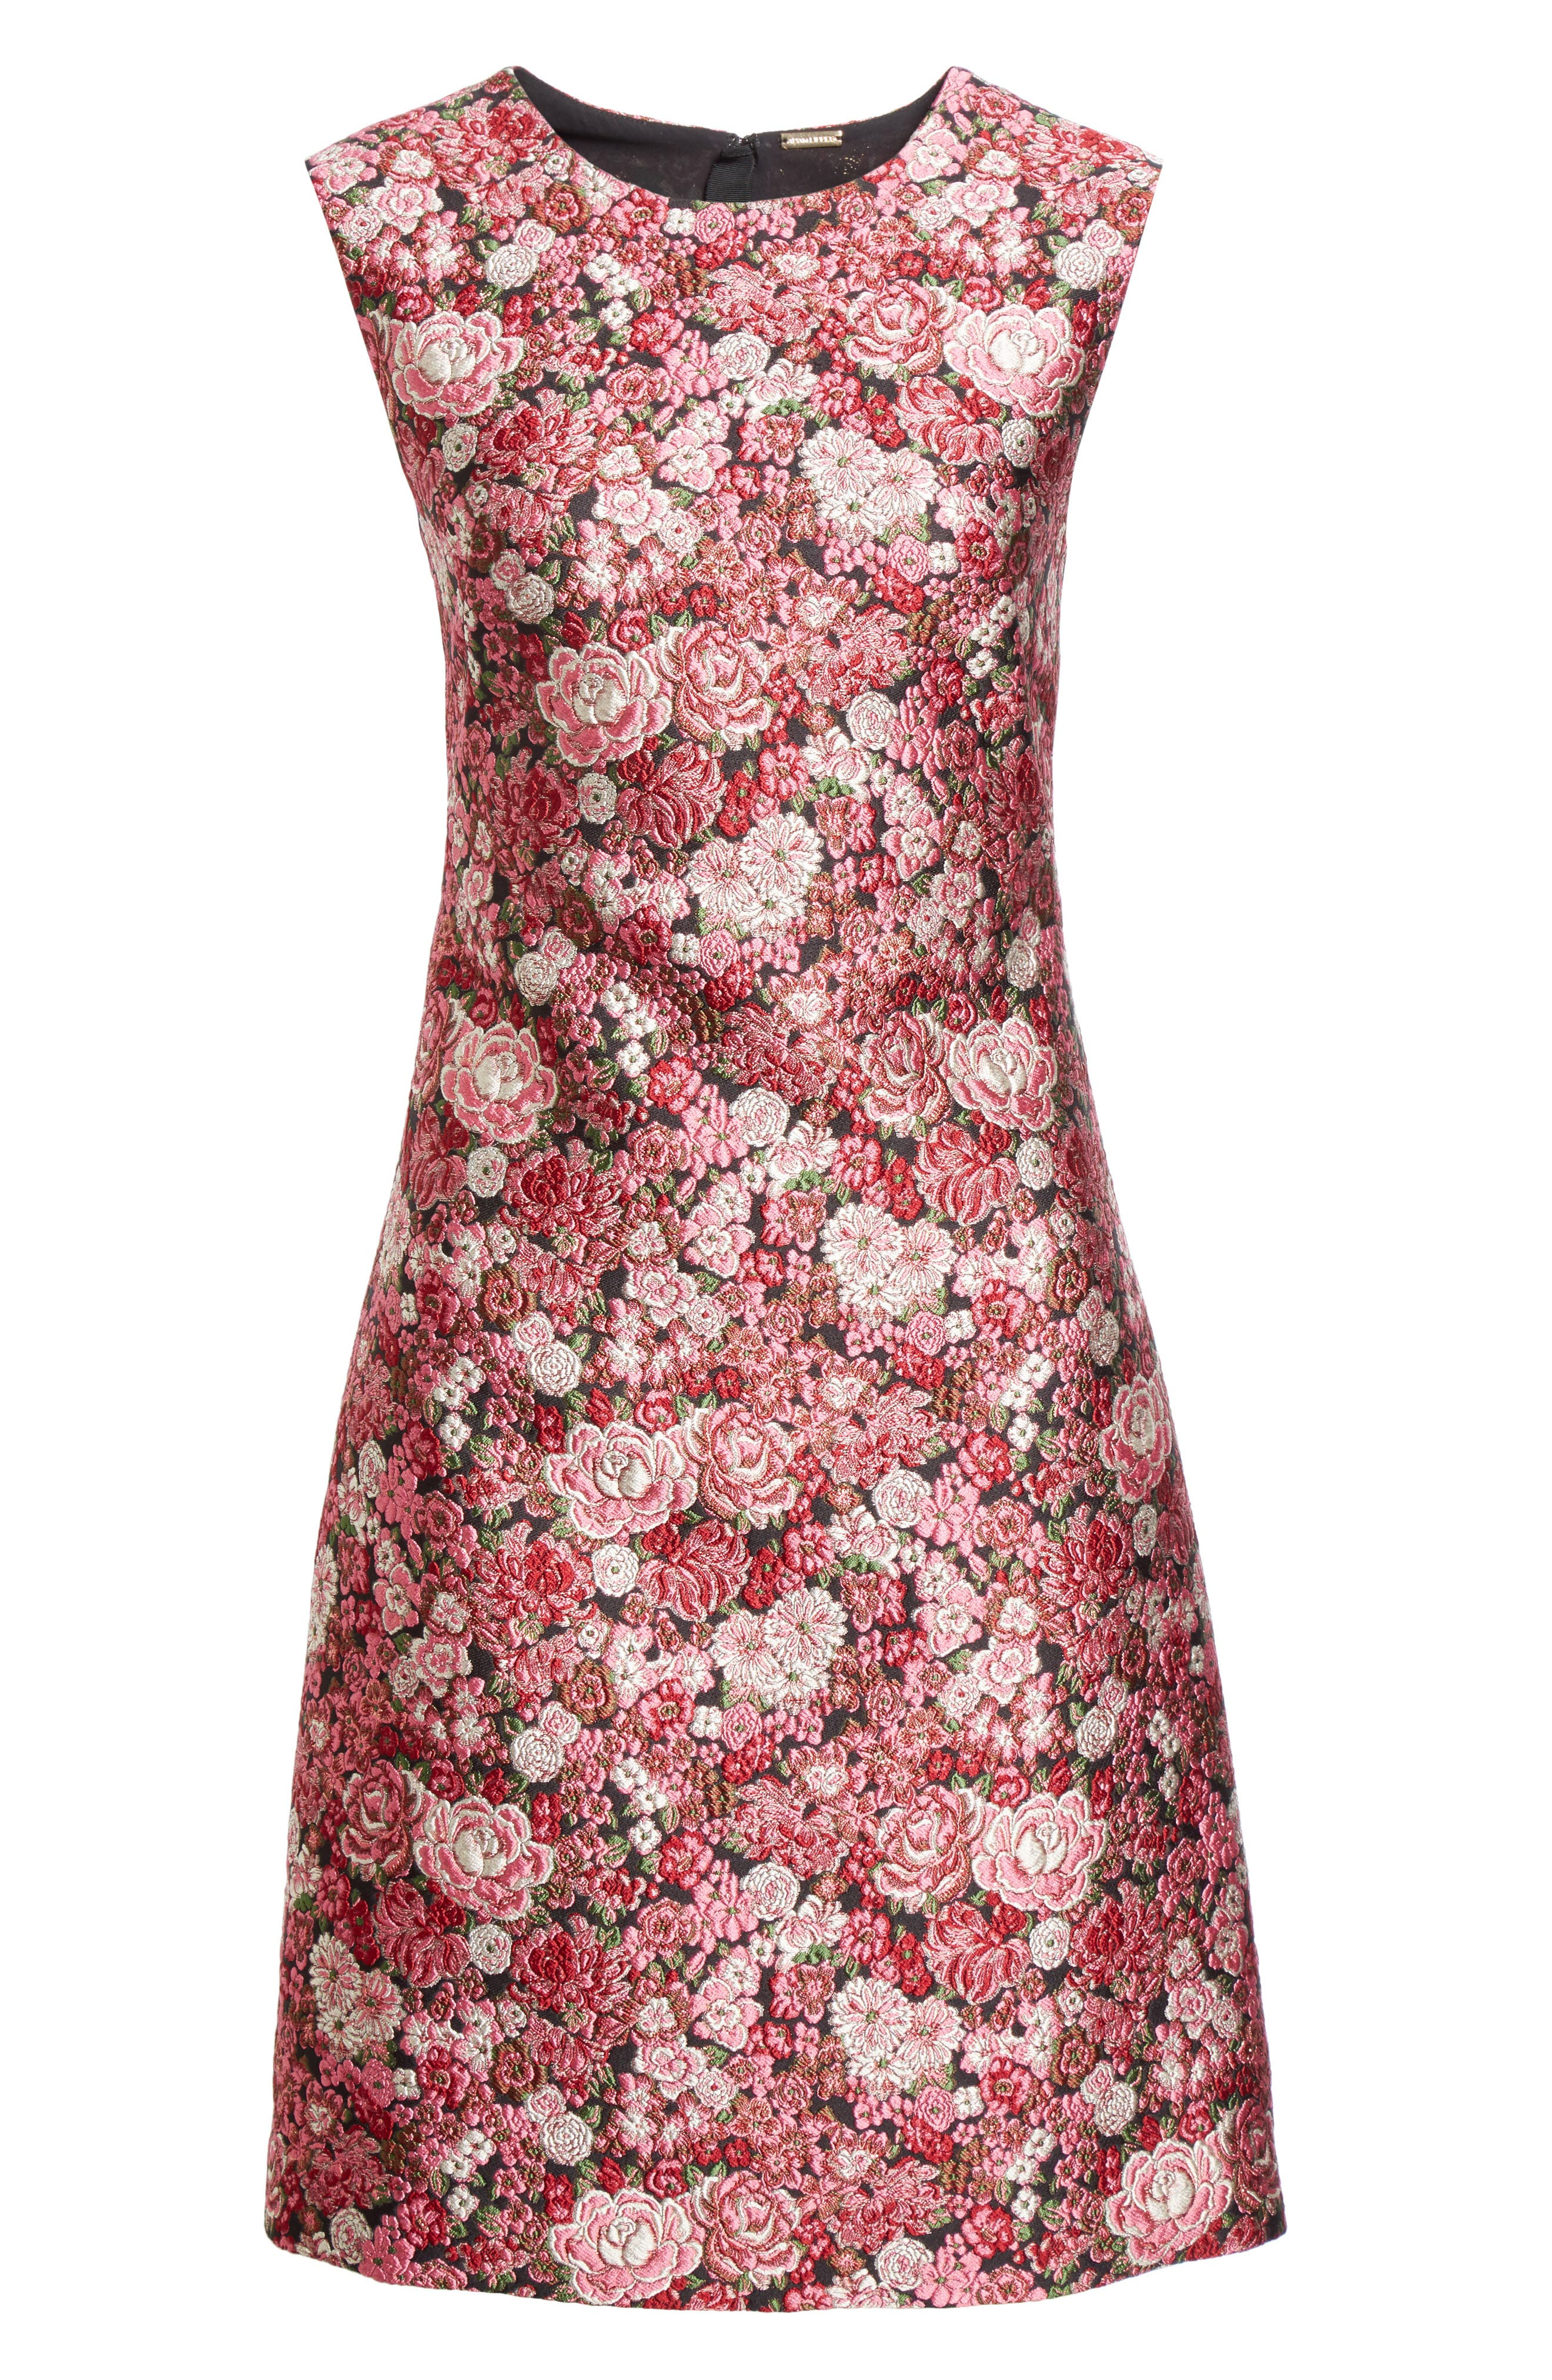 Floral Brocade Dress,                             Alternate thumbnail 7, color,                             Pink Multi